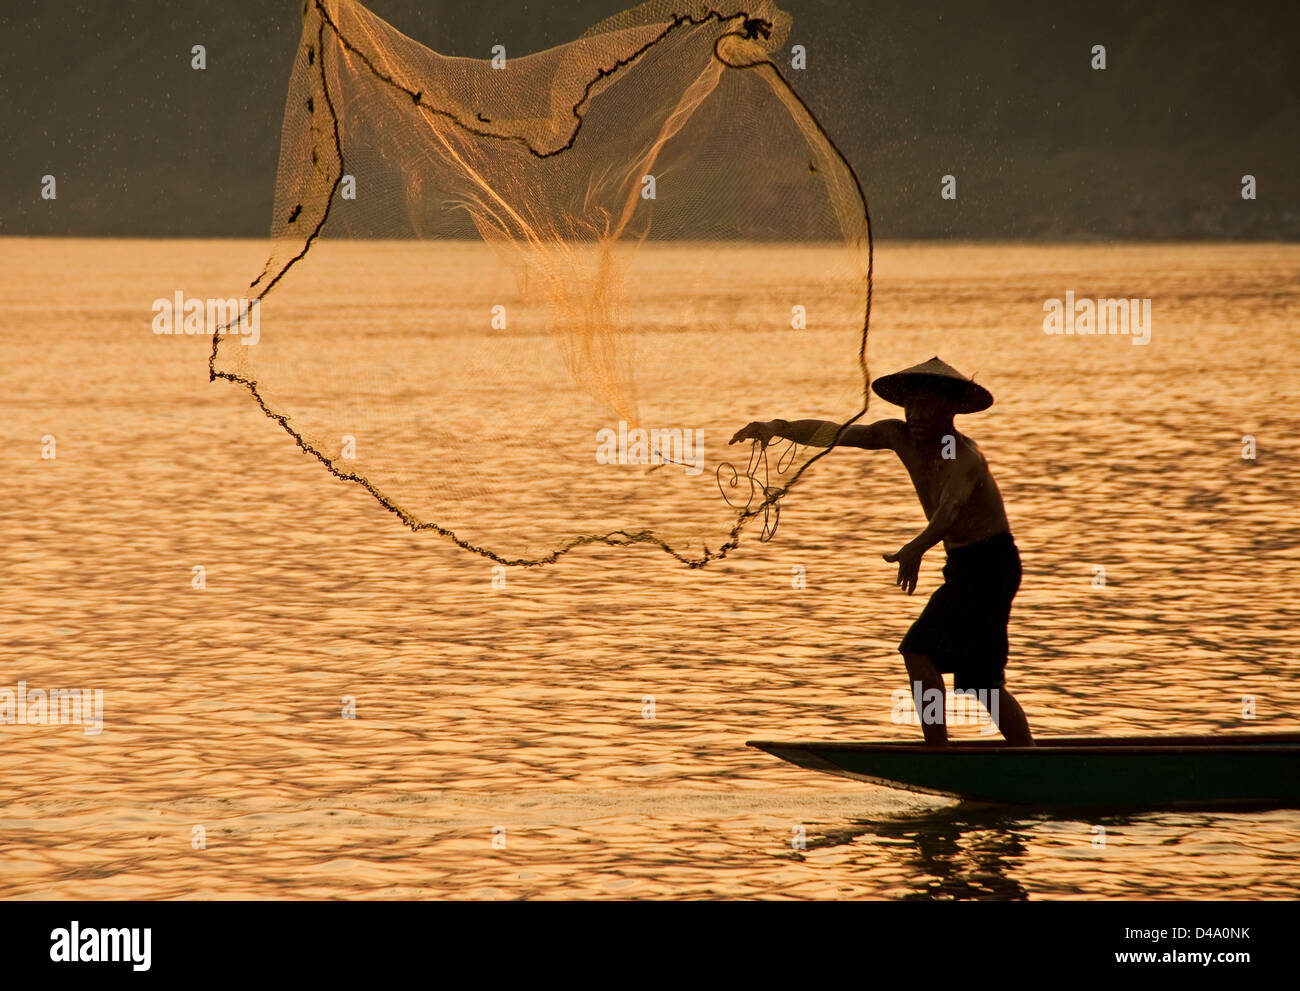 Fisherman tossing net on Mekong River at Luang Prabang, Laos - Stock Image